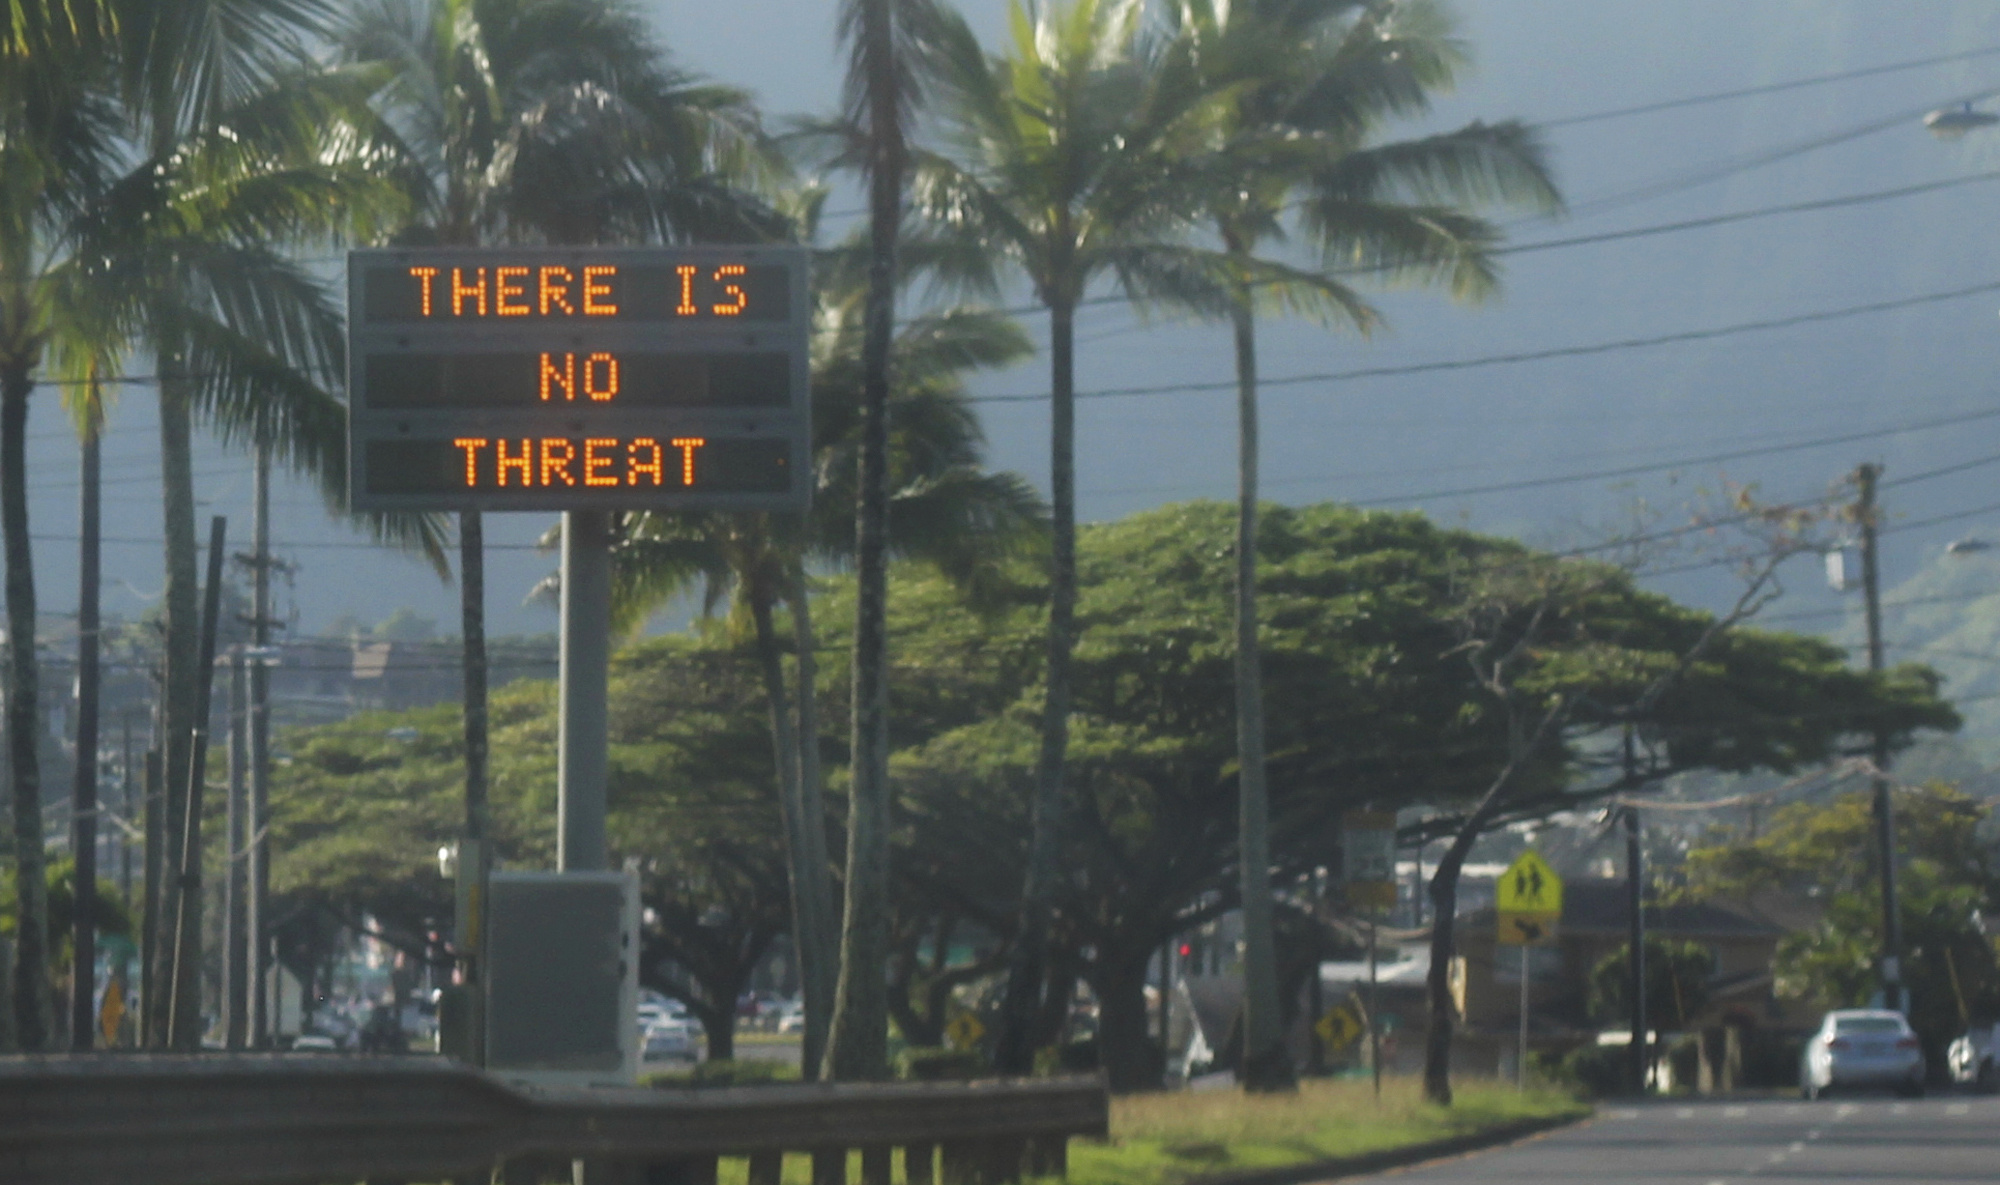 I went to Hawaii and all I got was this lousy missile crisis